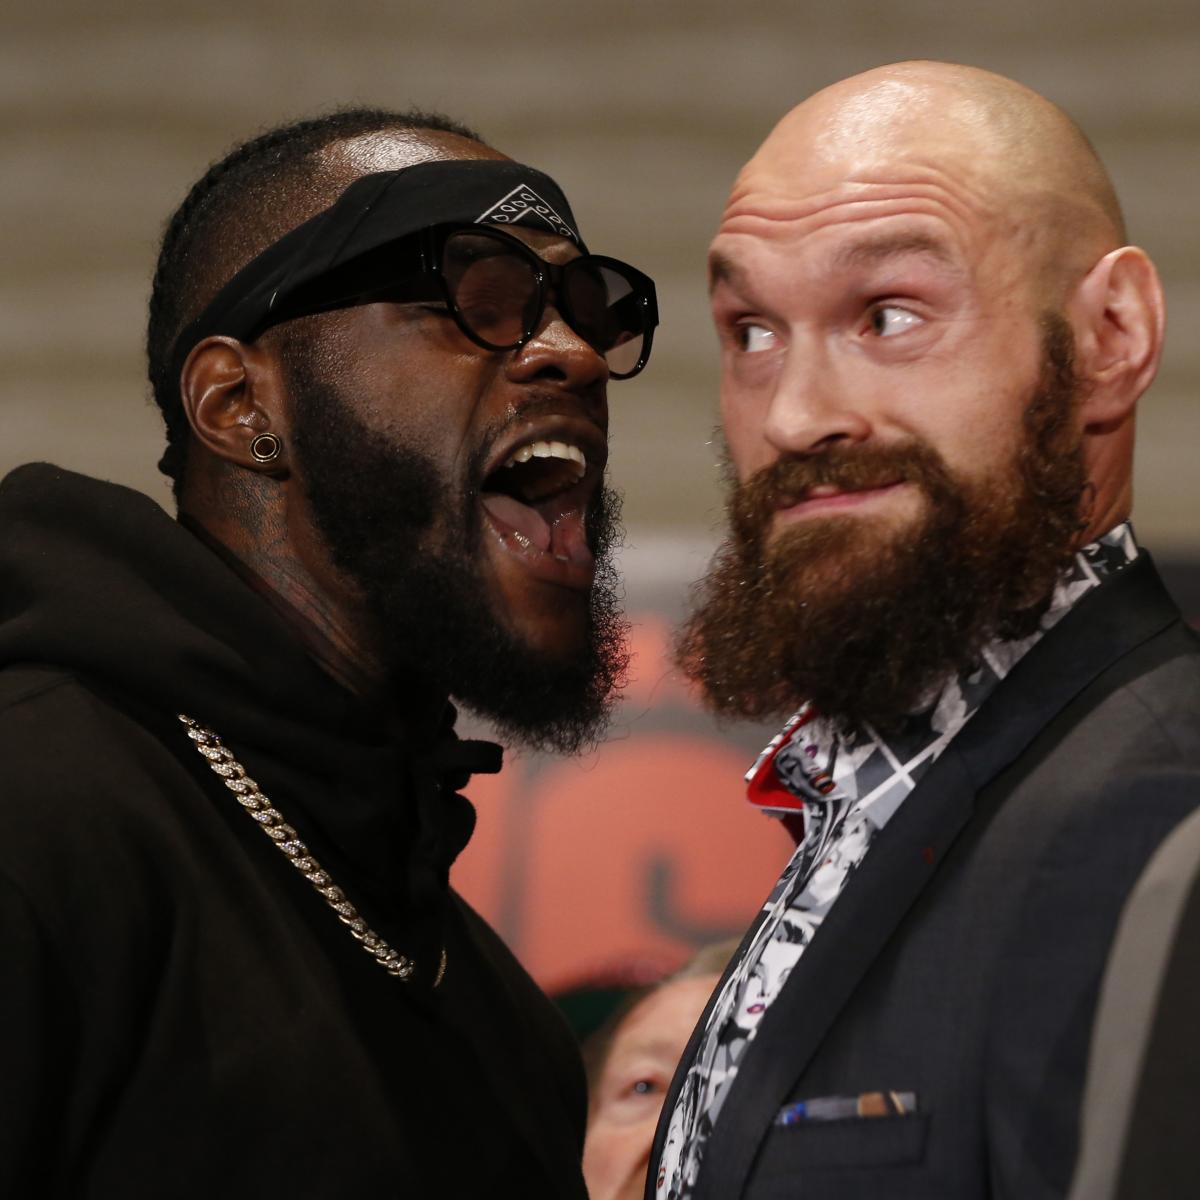 Tyson Fury Vs. Deontay Wilder Ends In Controversial Draw